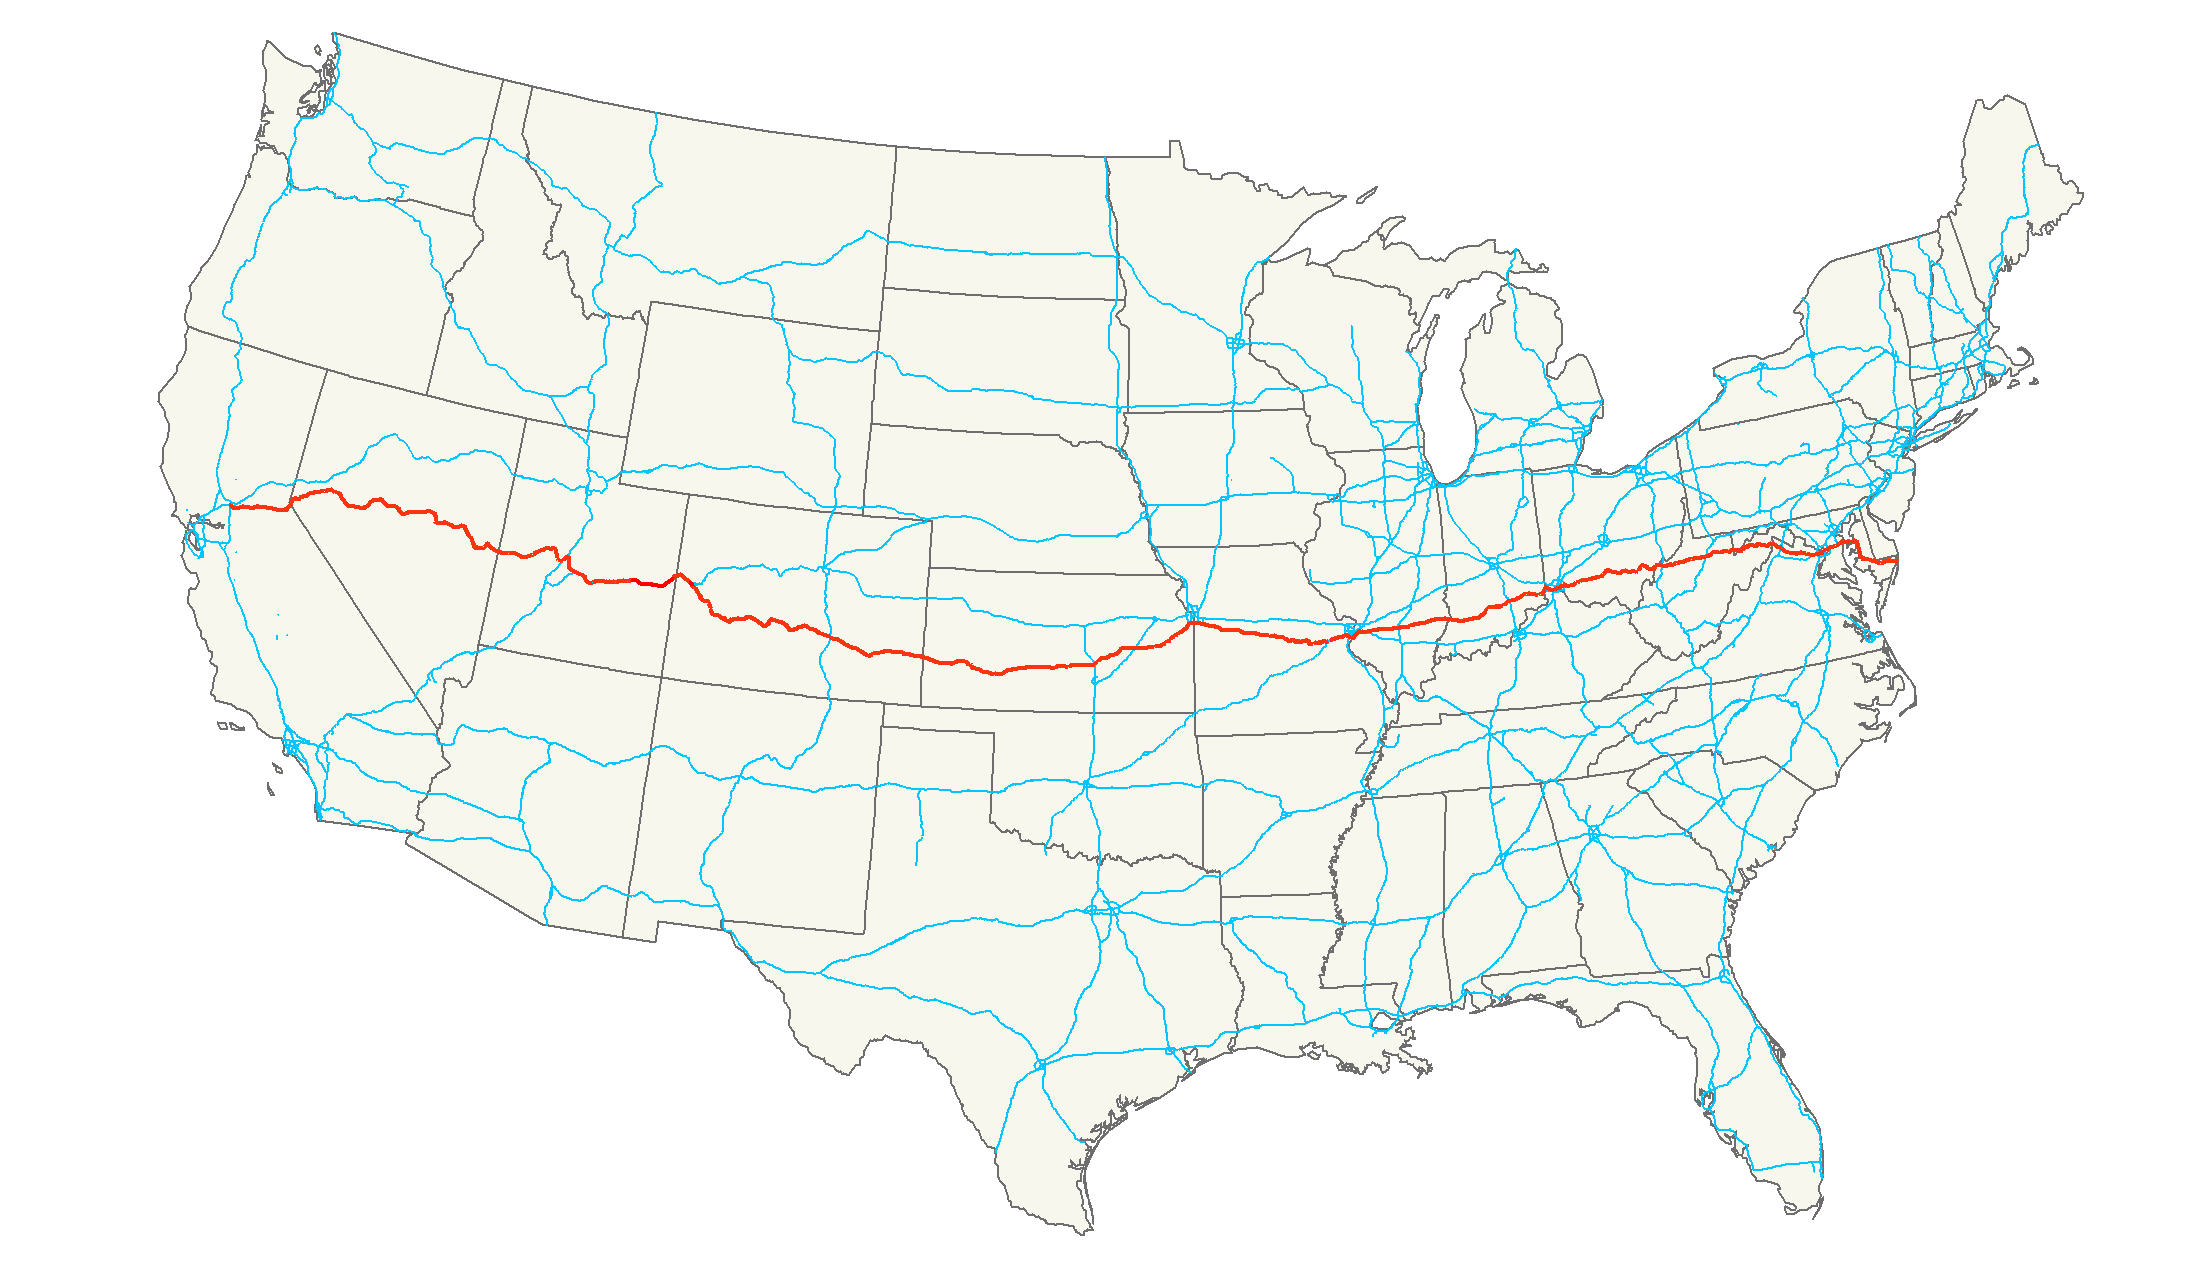 FileUS Mappng Wikimedia Commons - Map of us 50